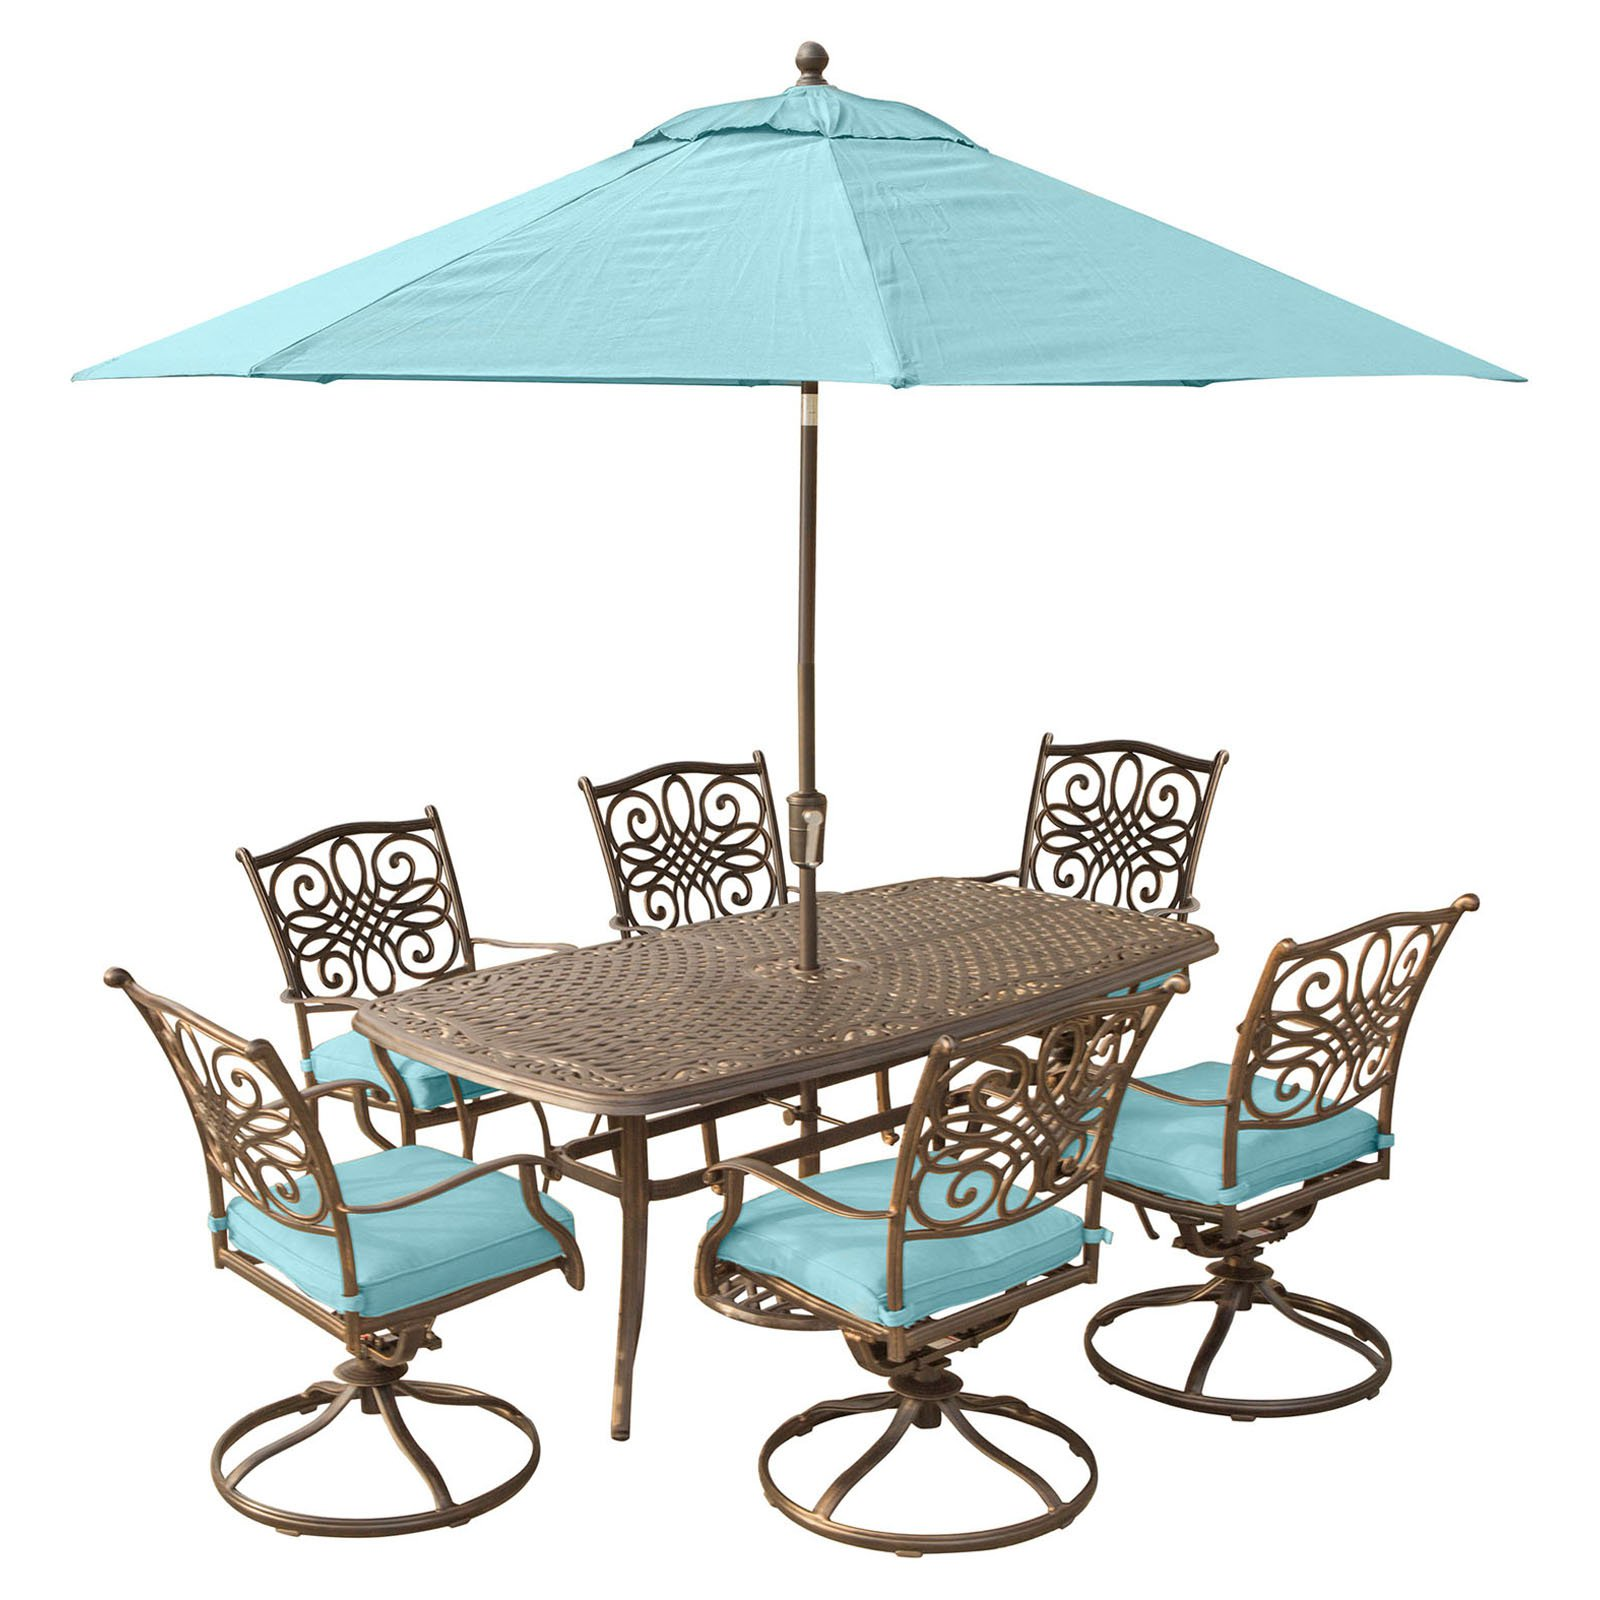 Hanover Outdoor Traditions 7-Piece Cast-Top Dining Set with 6 Swivel Rockers and Umbrella with Stand, Ocean Blue